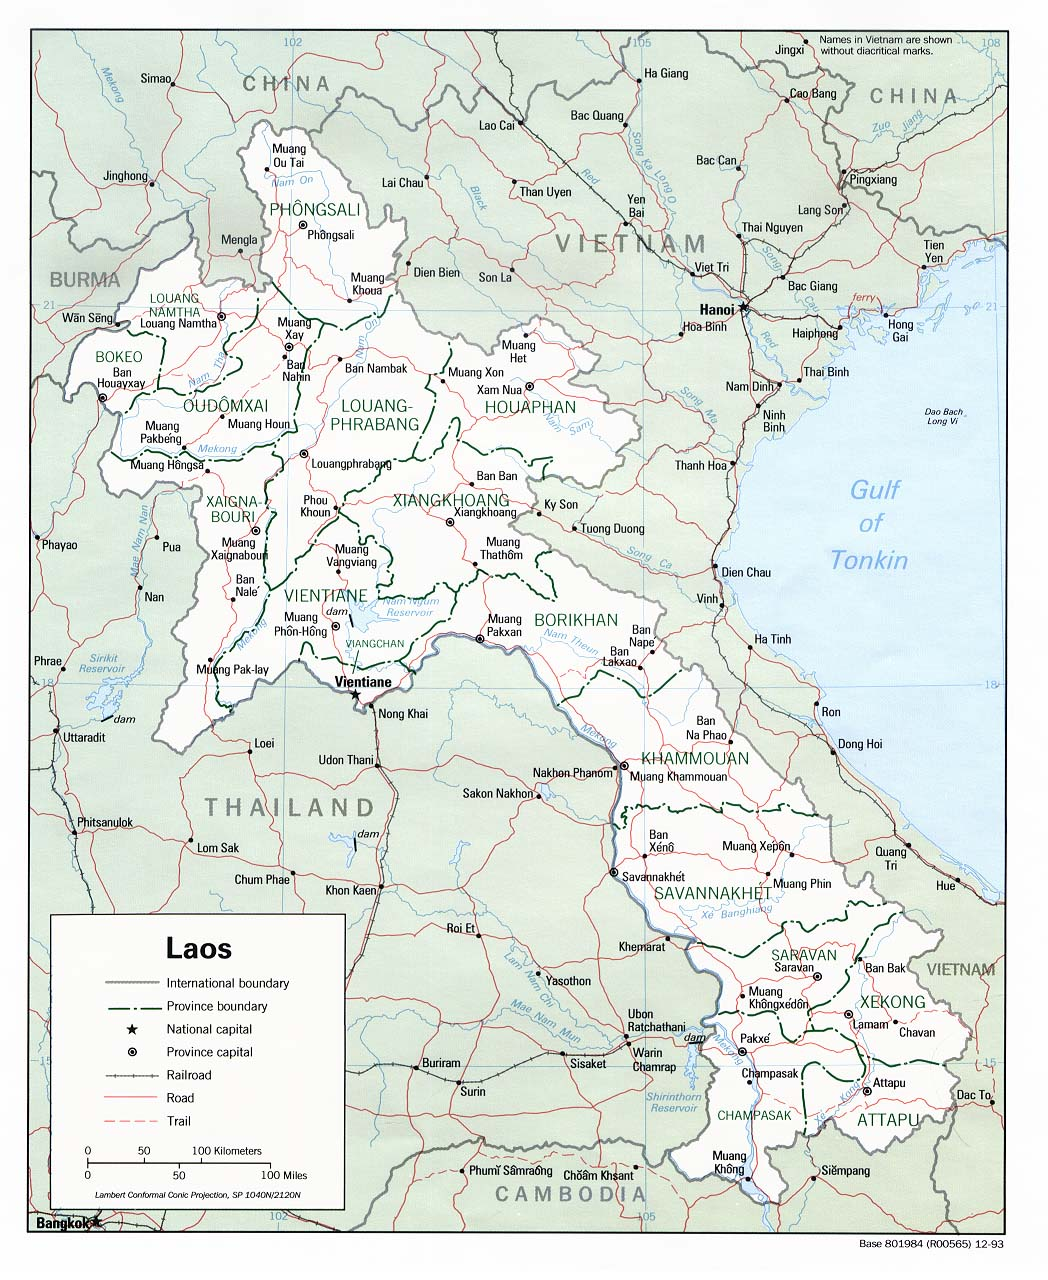 Laos Destination Guides Hotels And Travel Info At TripSpotcom - Sweden map lonely planet